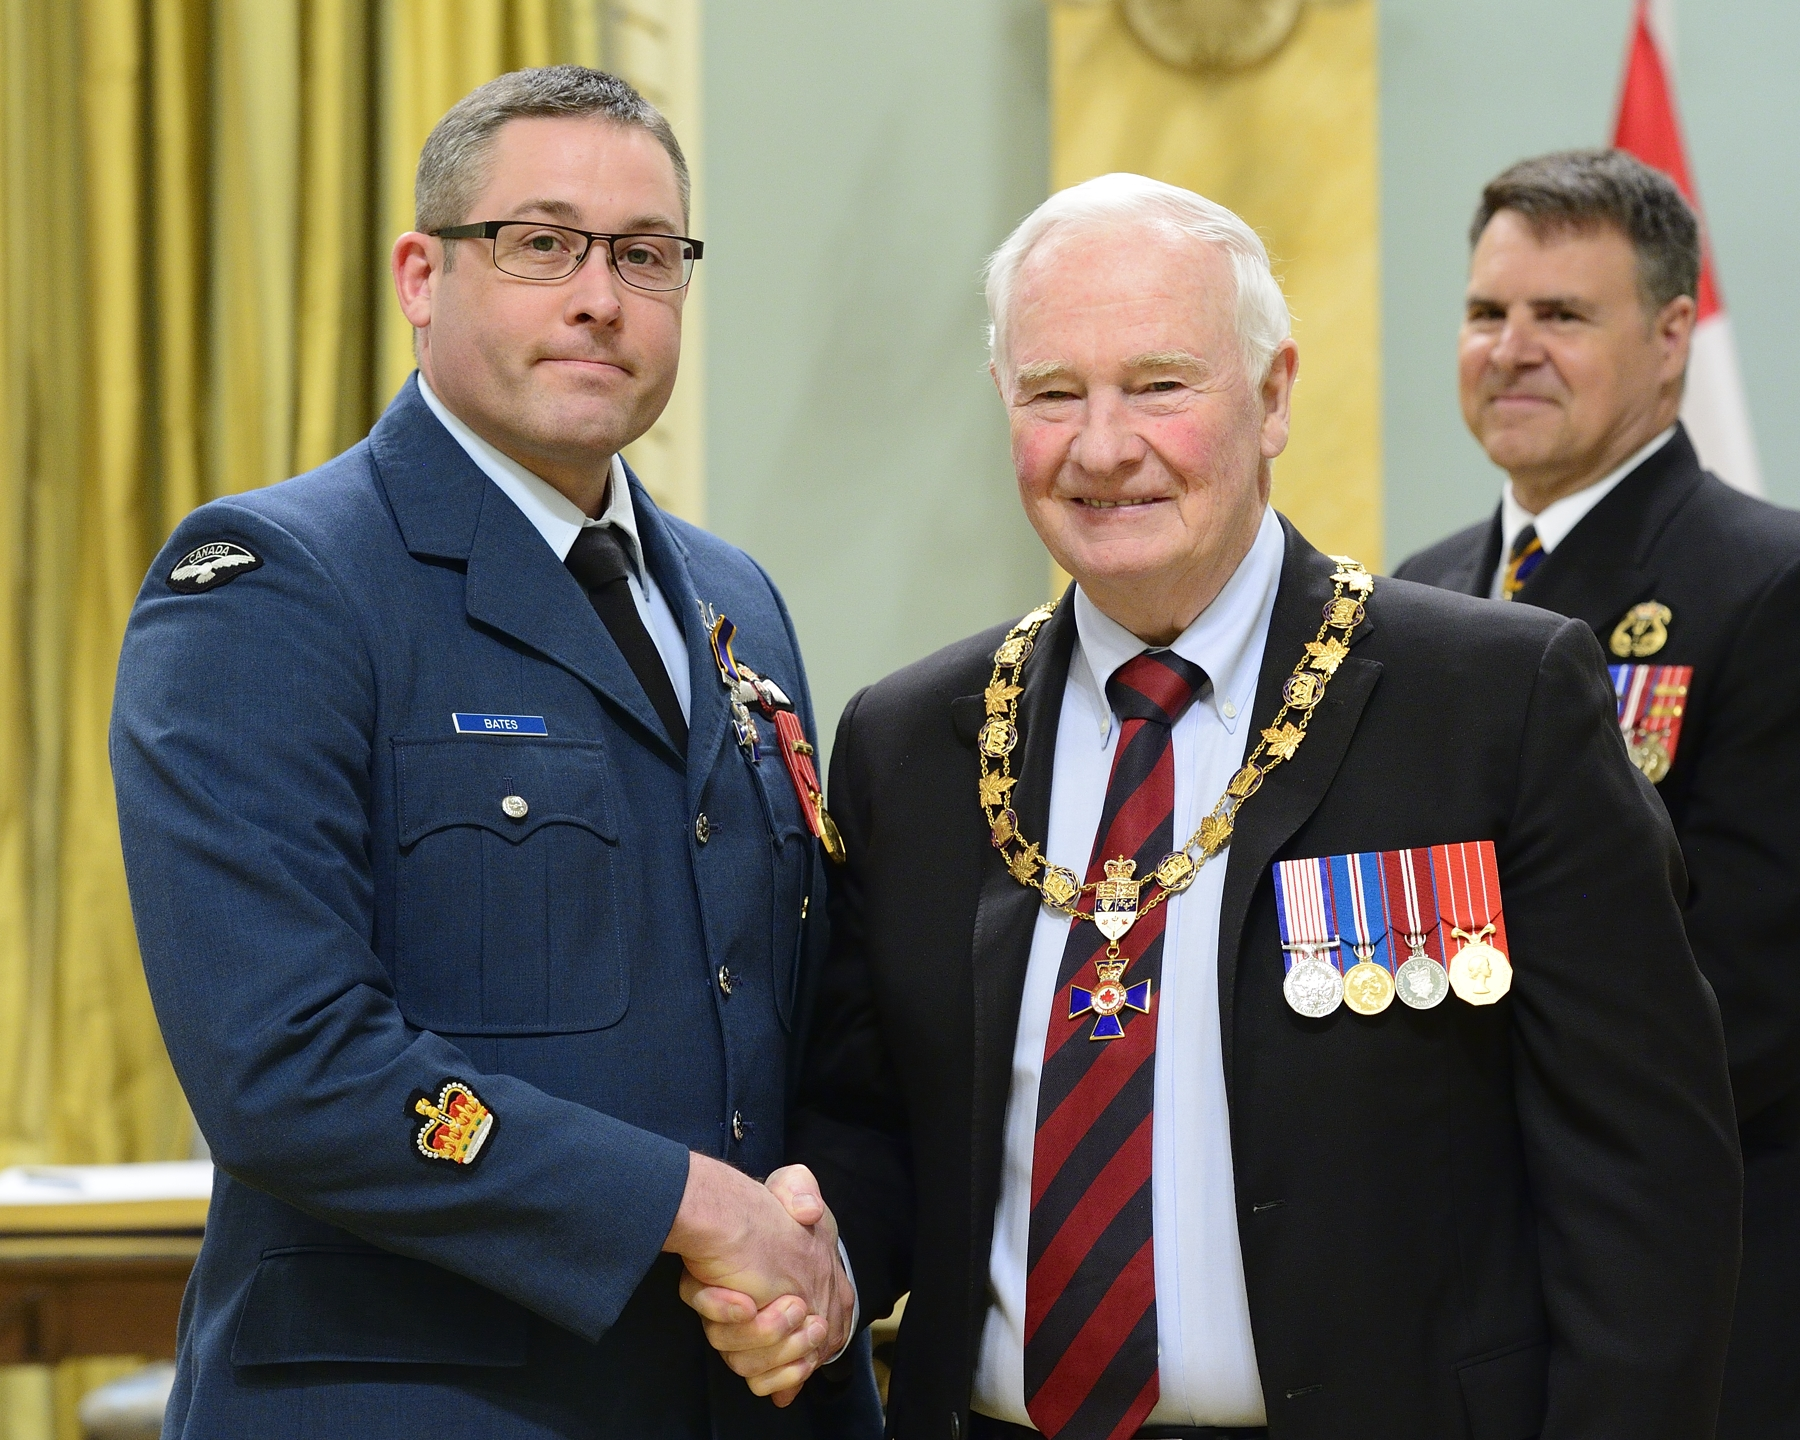 Governor General and Commander-in-Chief of Canada David Johnston presents the Order of Military Merit to Sergeant Stephen Claude Joseph Bates, MMM, CD, from  